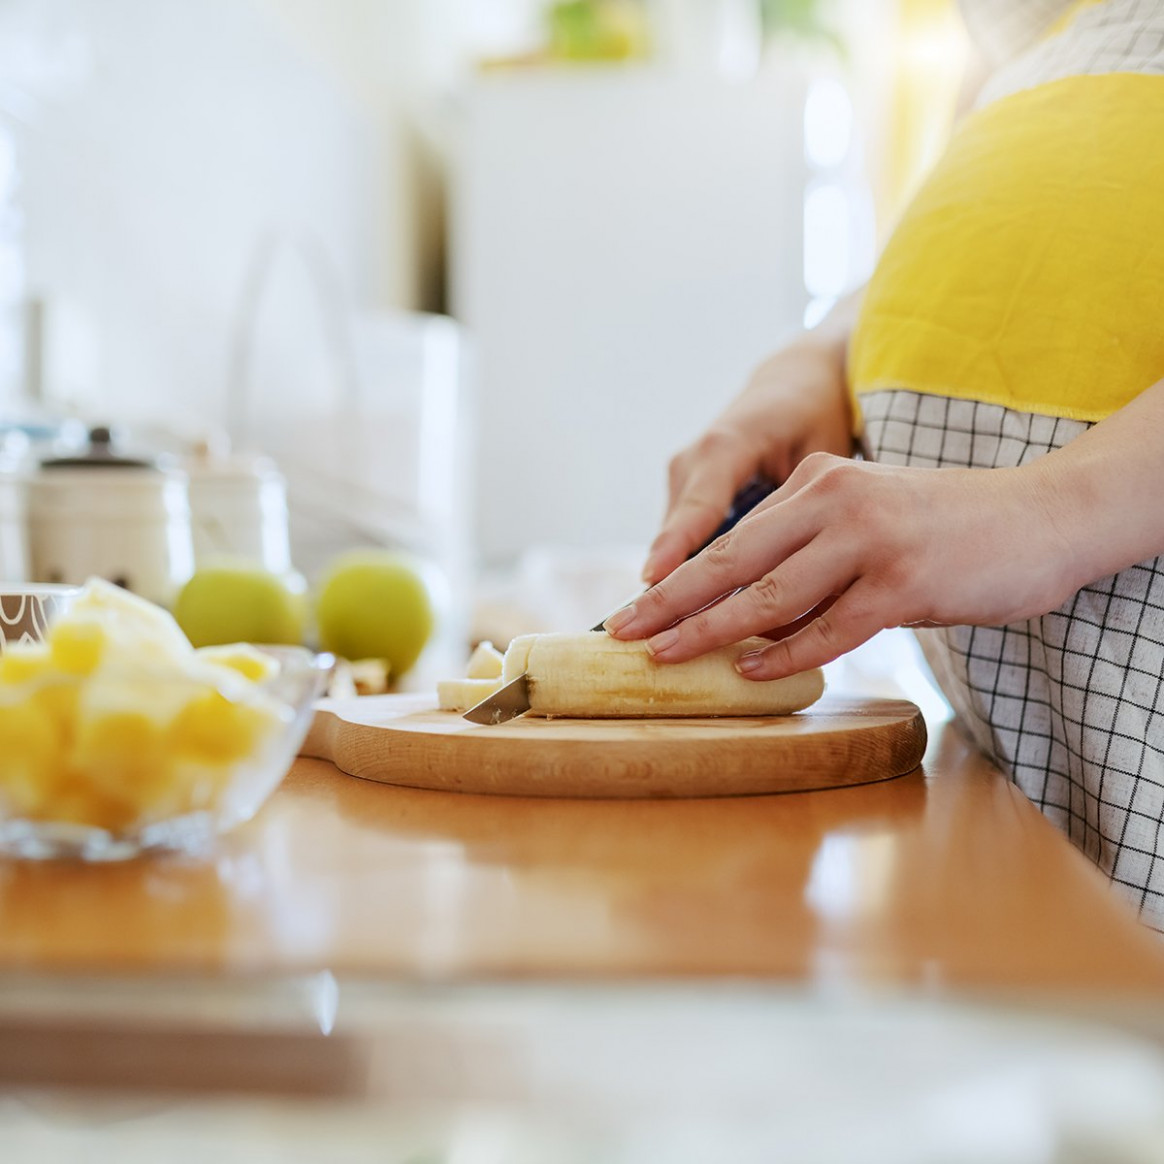 Healthy Food for Pregnancy: 14 Foods to Love | Taste of Home - healthy recipes during pregnancy